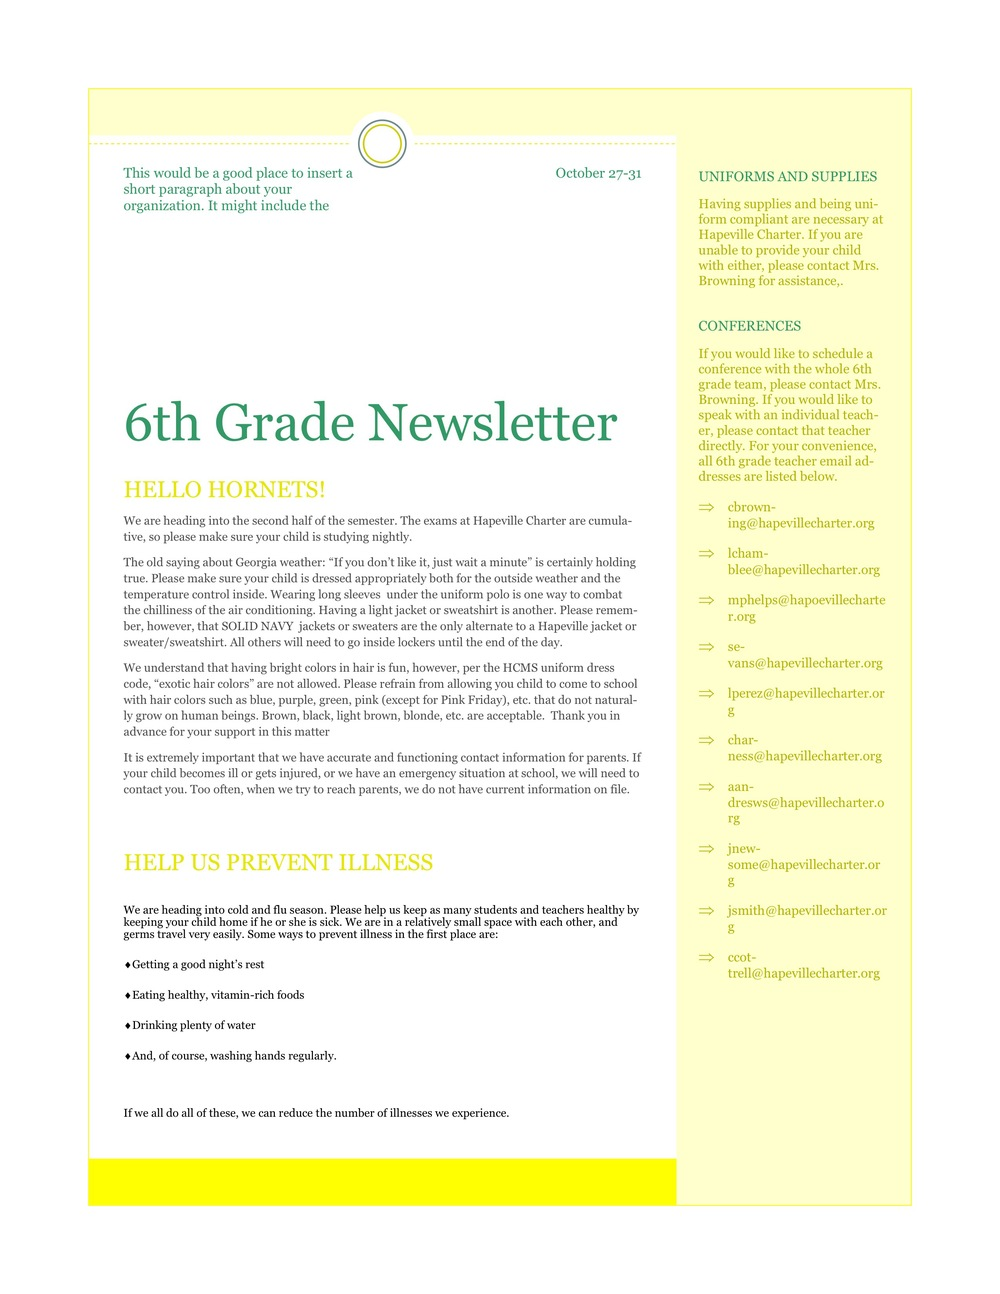 Newsletter Image6th grade October 27-31.jpeg